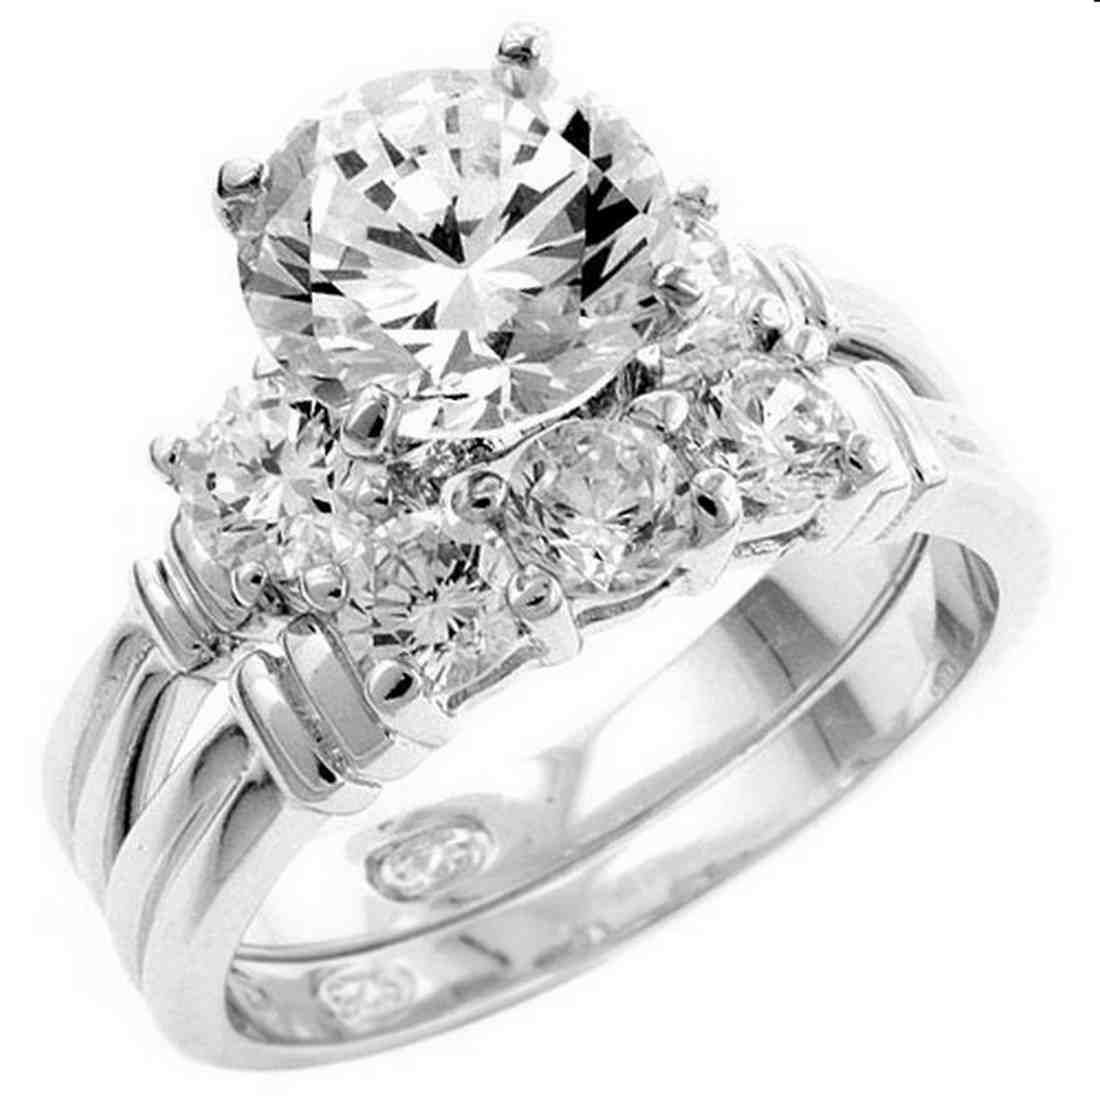 Most Expensive Engagement Ring Expensive Wedding Rings Irish Wedding Rings Cute Engagement Rings